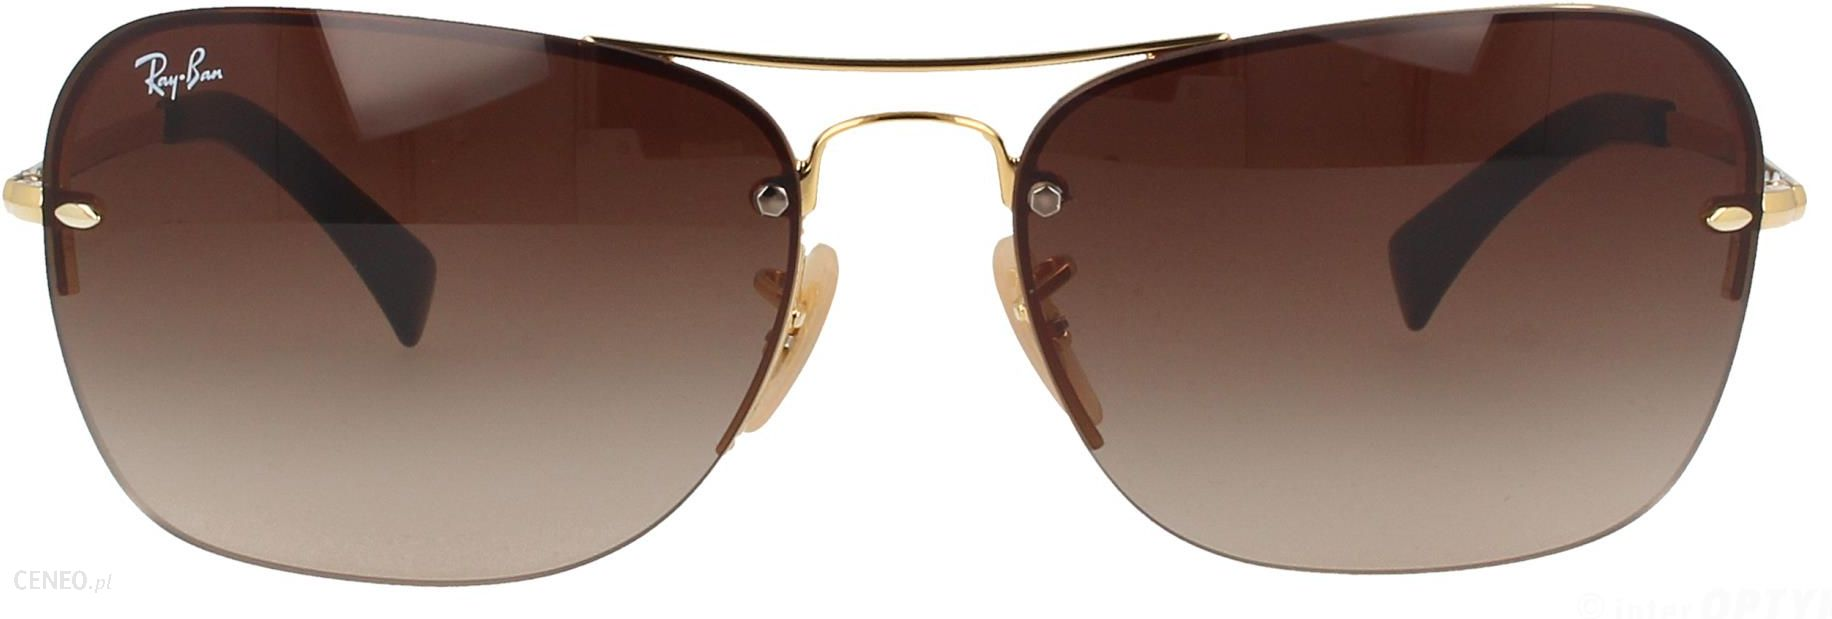 d4bb366362a Ray-Ban RB3541 001 13 61 - Ceny i opinie - Ceneo.pl